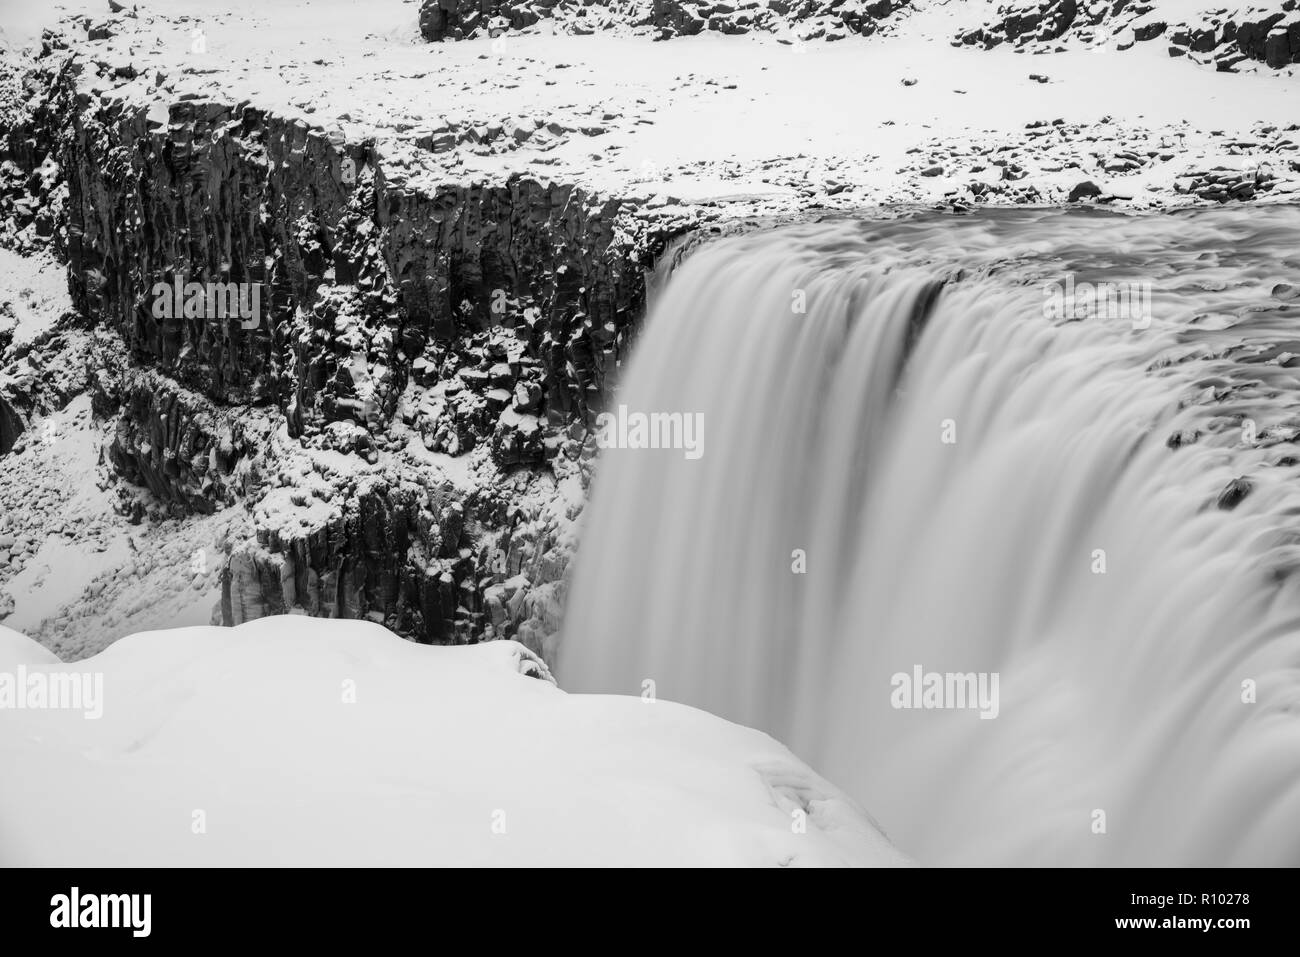 Amazing Iceland in winter - breathtaking scenery and frozen landscapes - incredible black and white images from iconic locations Stock Photo